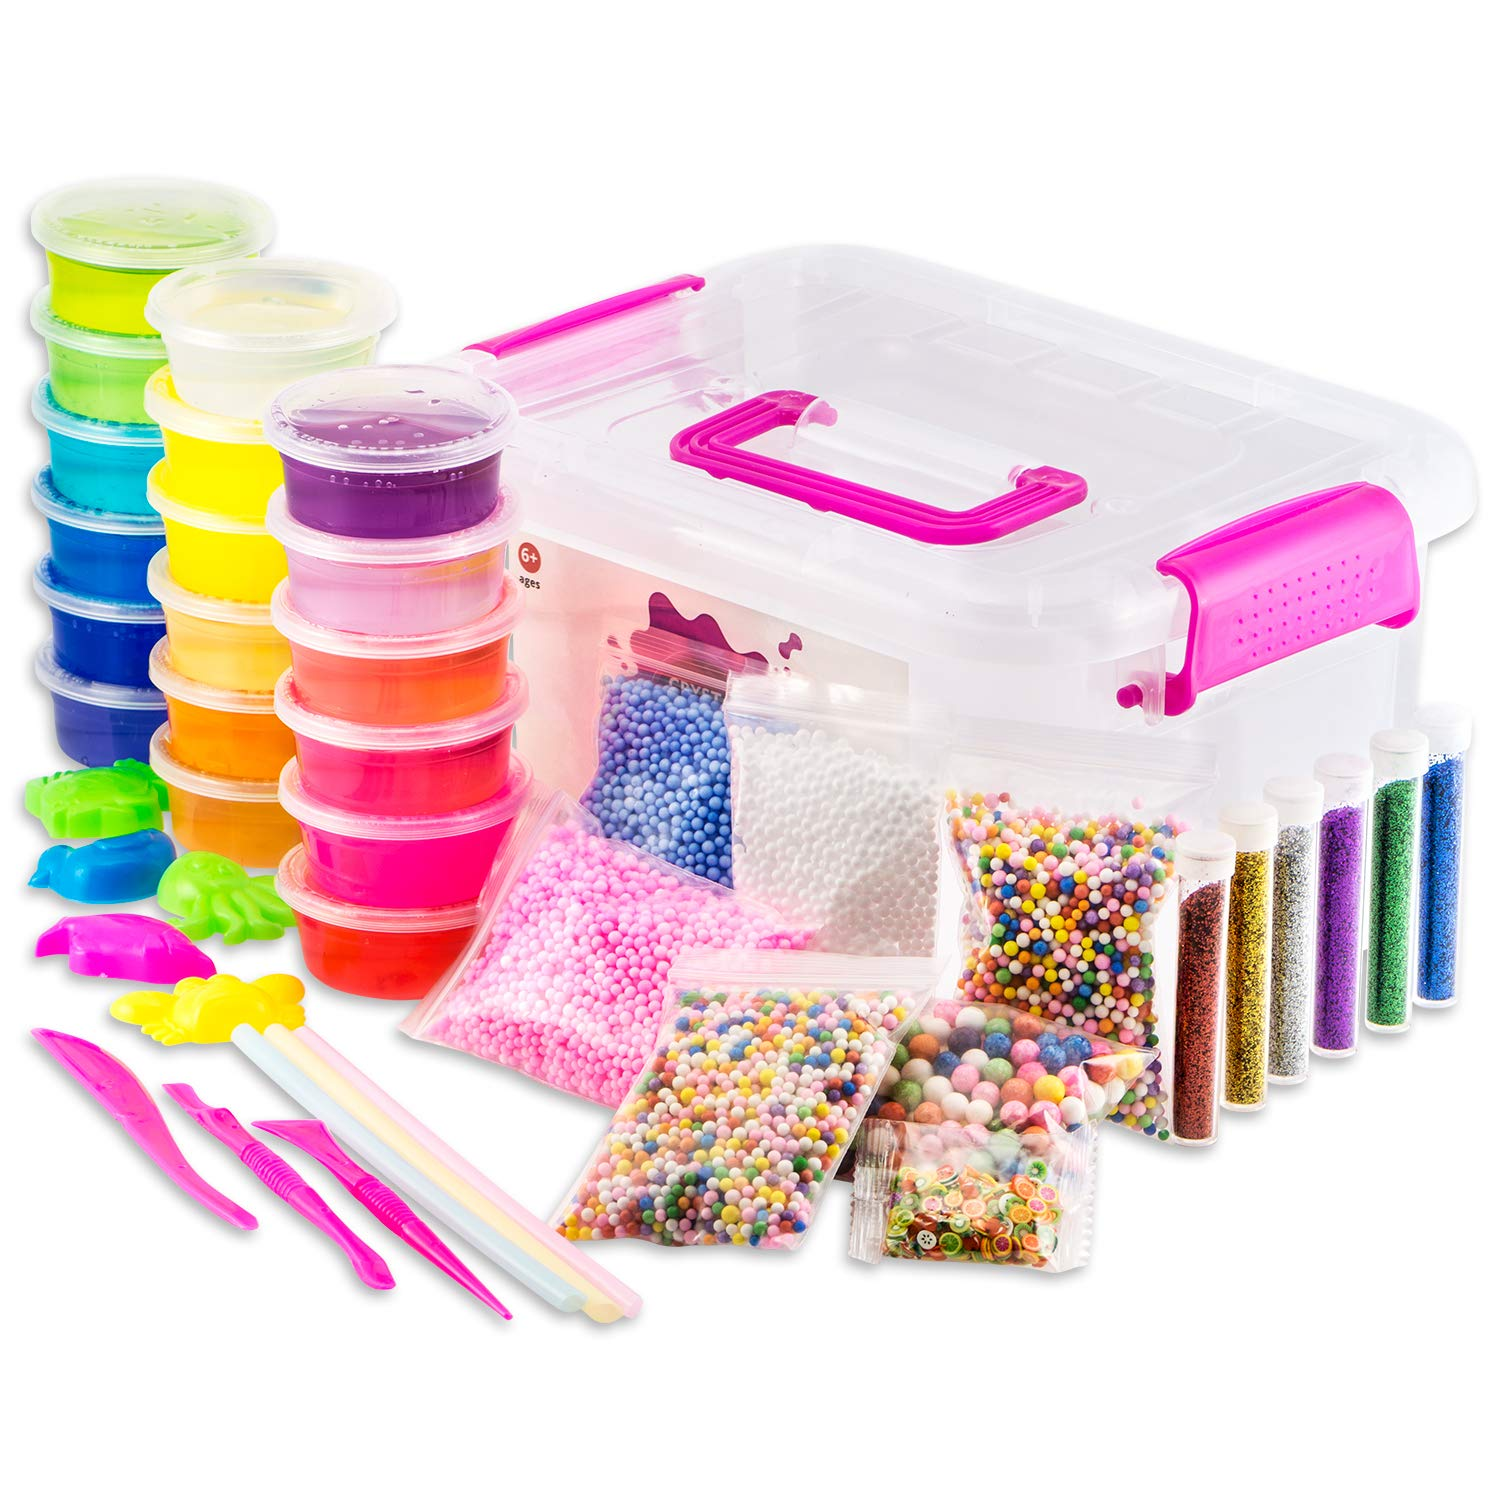 Ultimate Slime Kit For Girls - DIY Slime Making Kits With Everything You Need - Make Your Own Fluffy Slime Supplies For Kids With 18 Colors, Glitter and Foam Balls - Educational Sensory Safe Toy Set